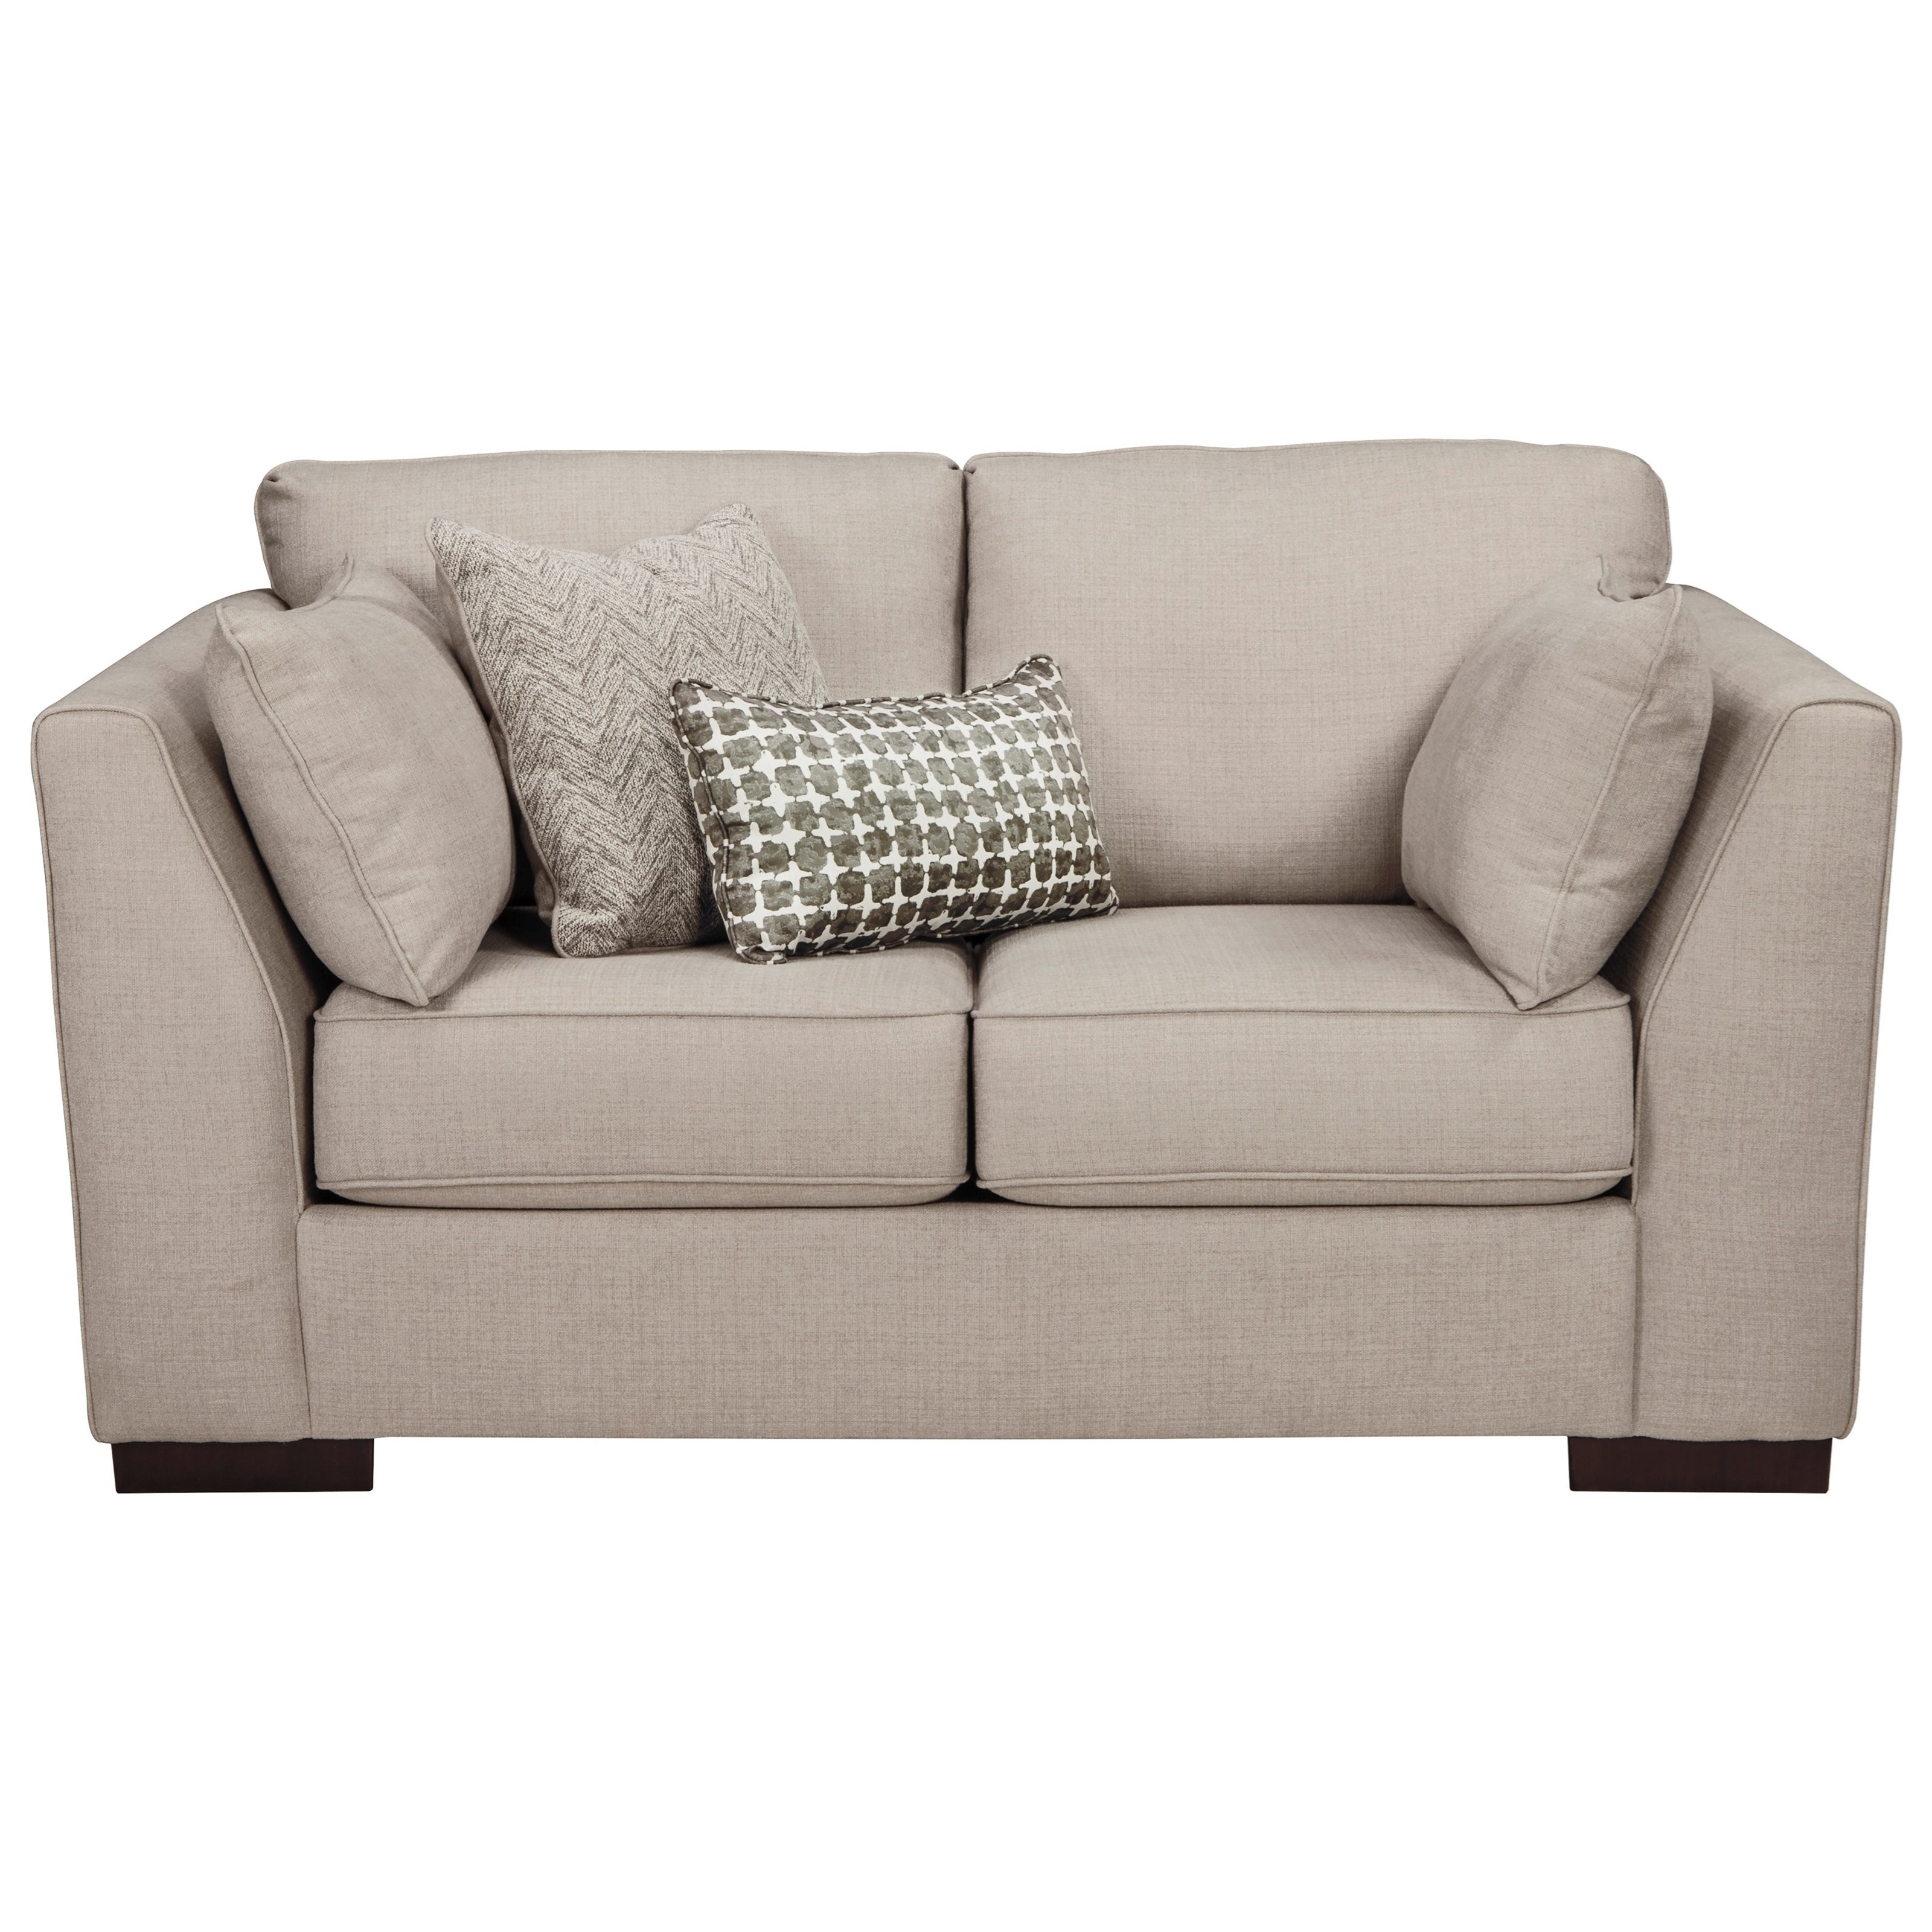 Benchcraft Lainier Loveseat - Item Number: 5420235